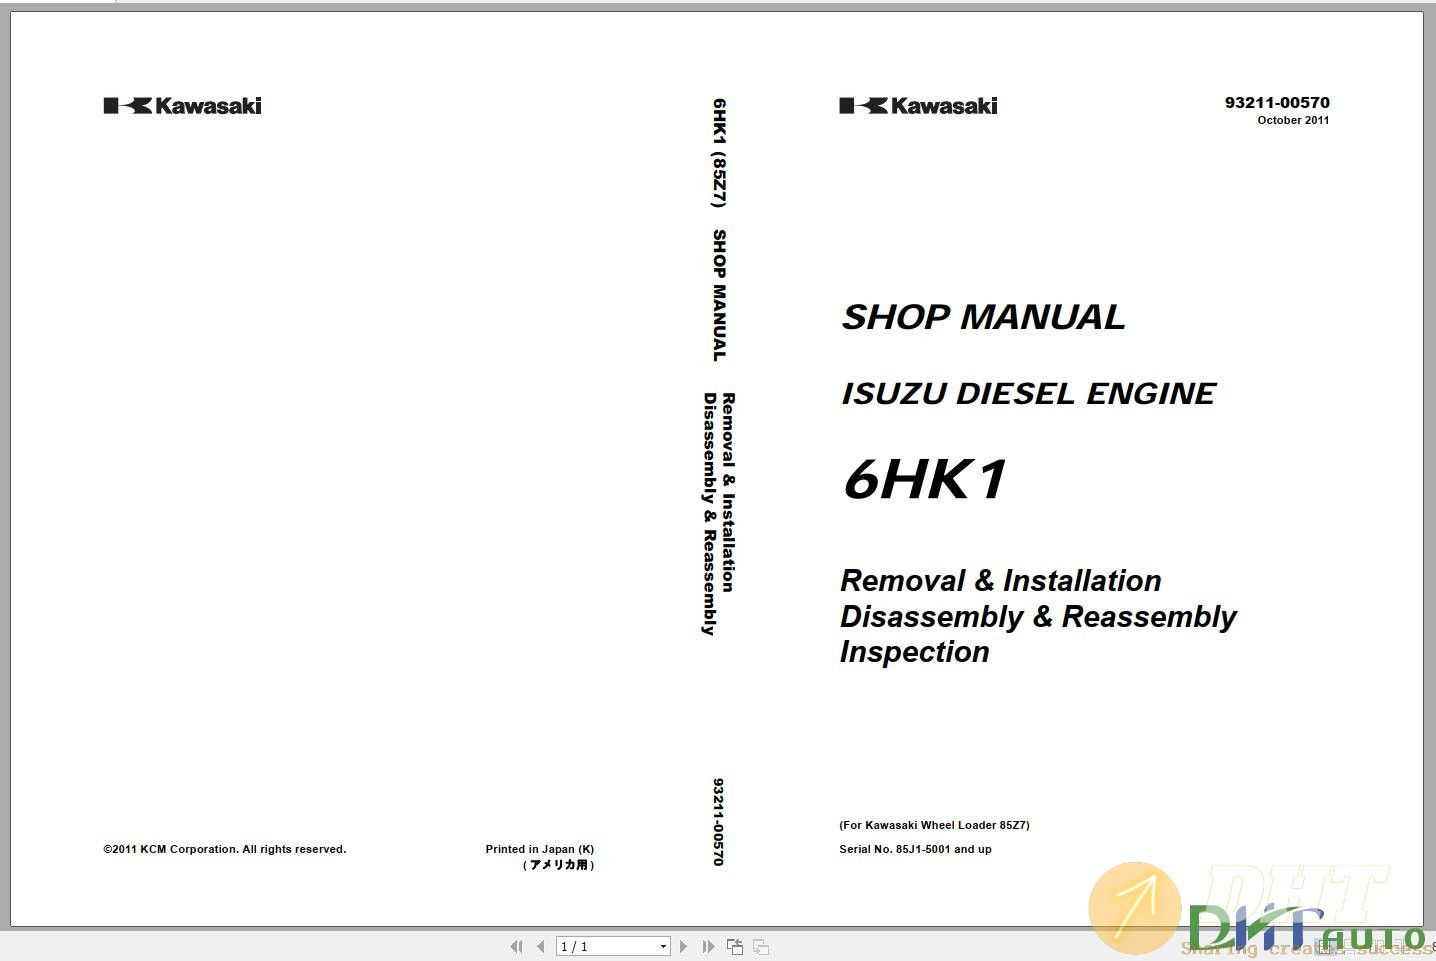 Kawasaki-Wheel-Loader-Workshop-Manual-Part-Manual-Full-Set-Update-2020-3.jpg